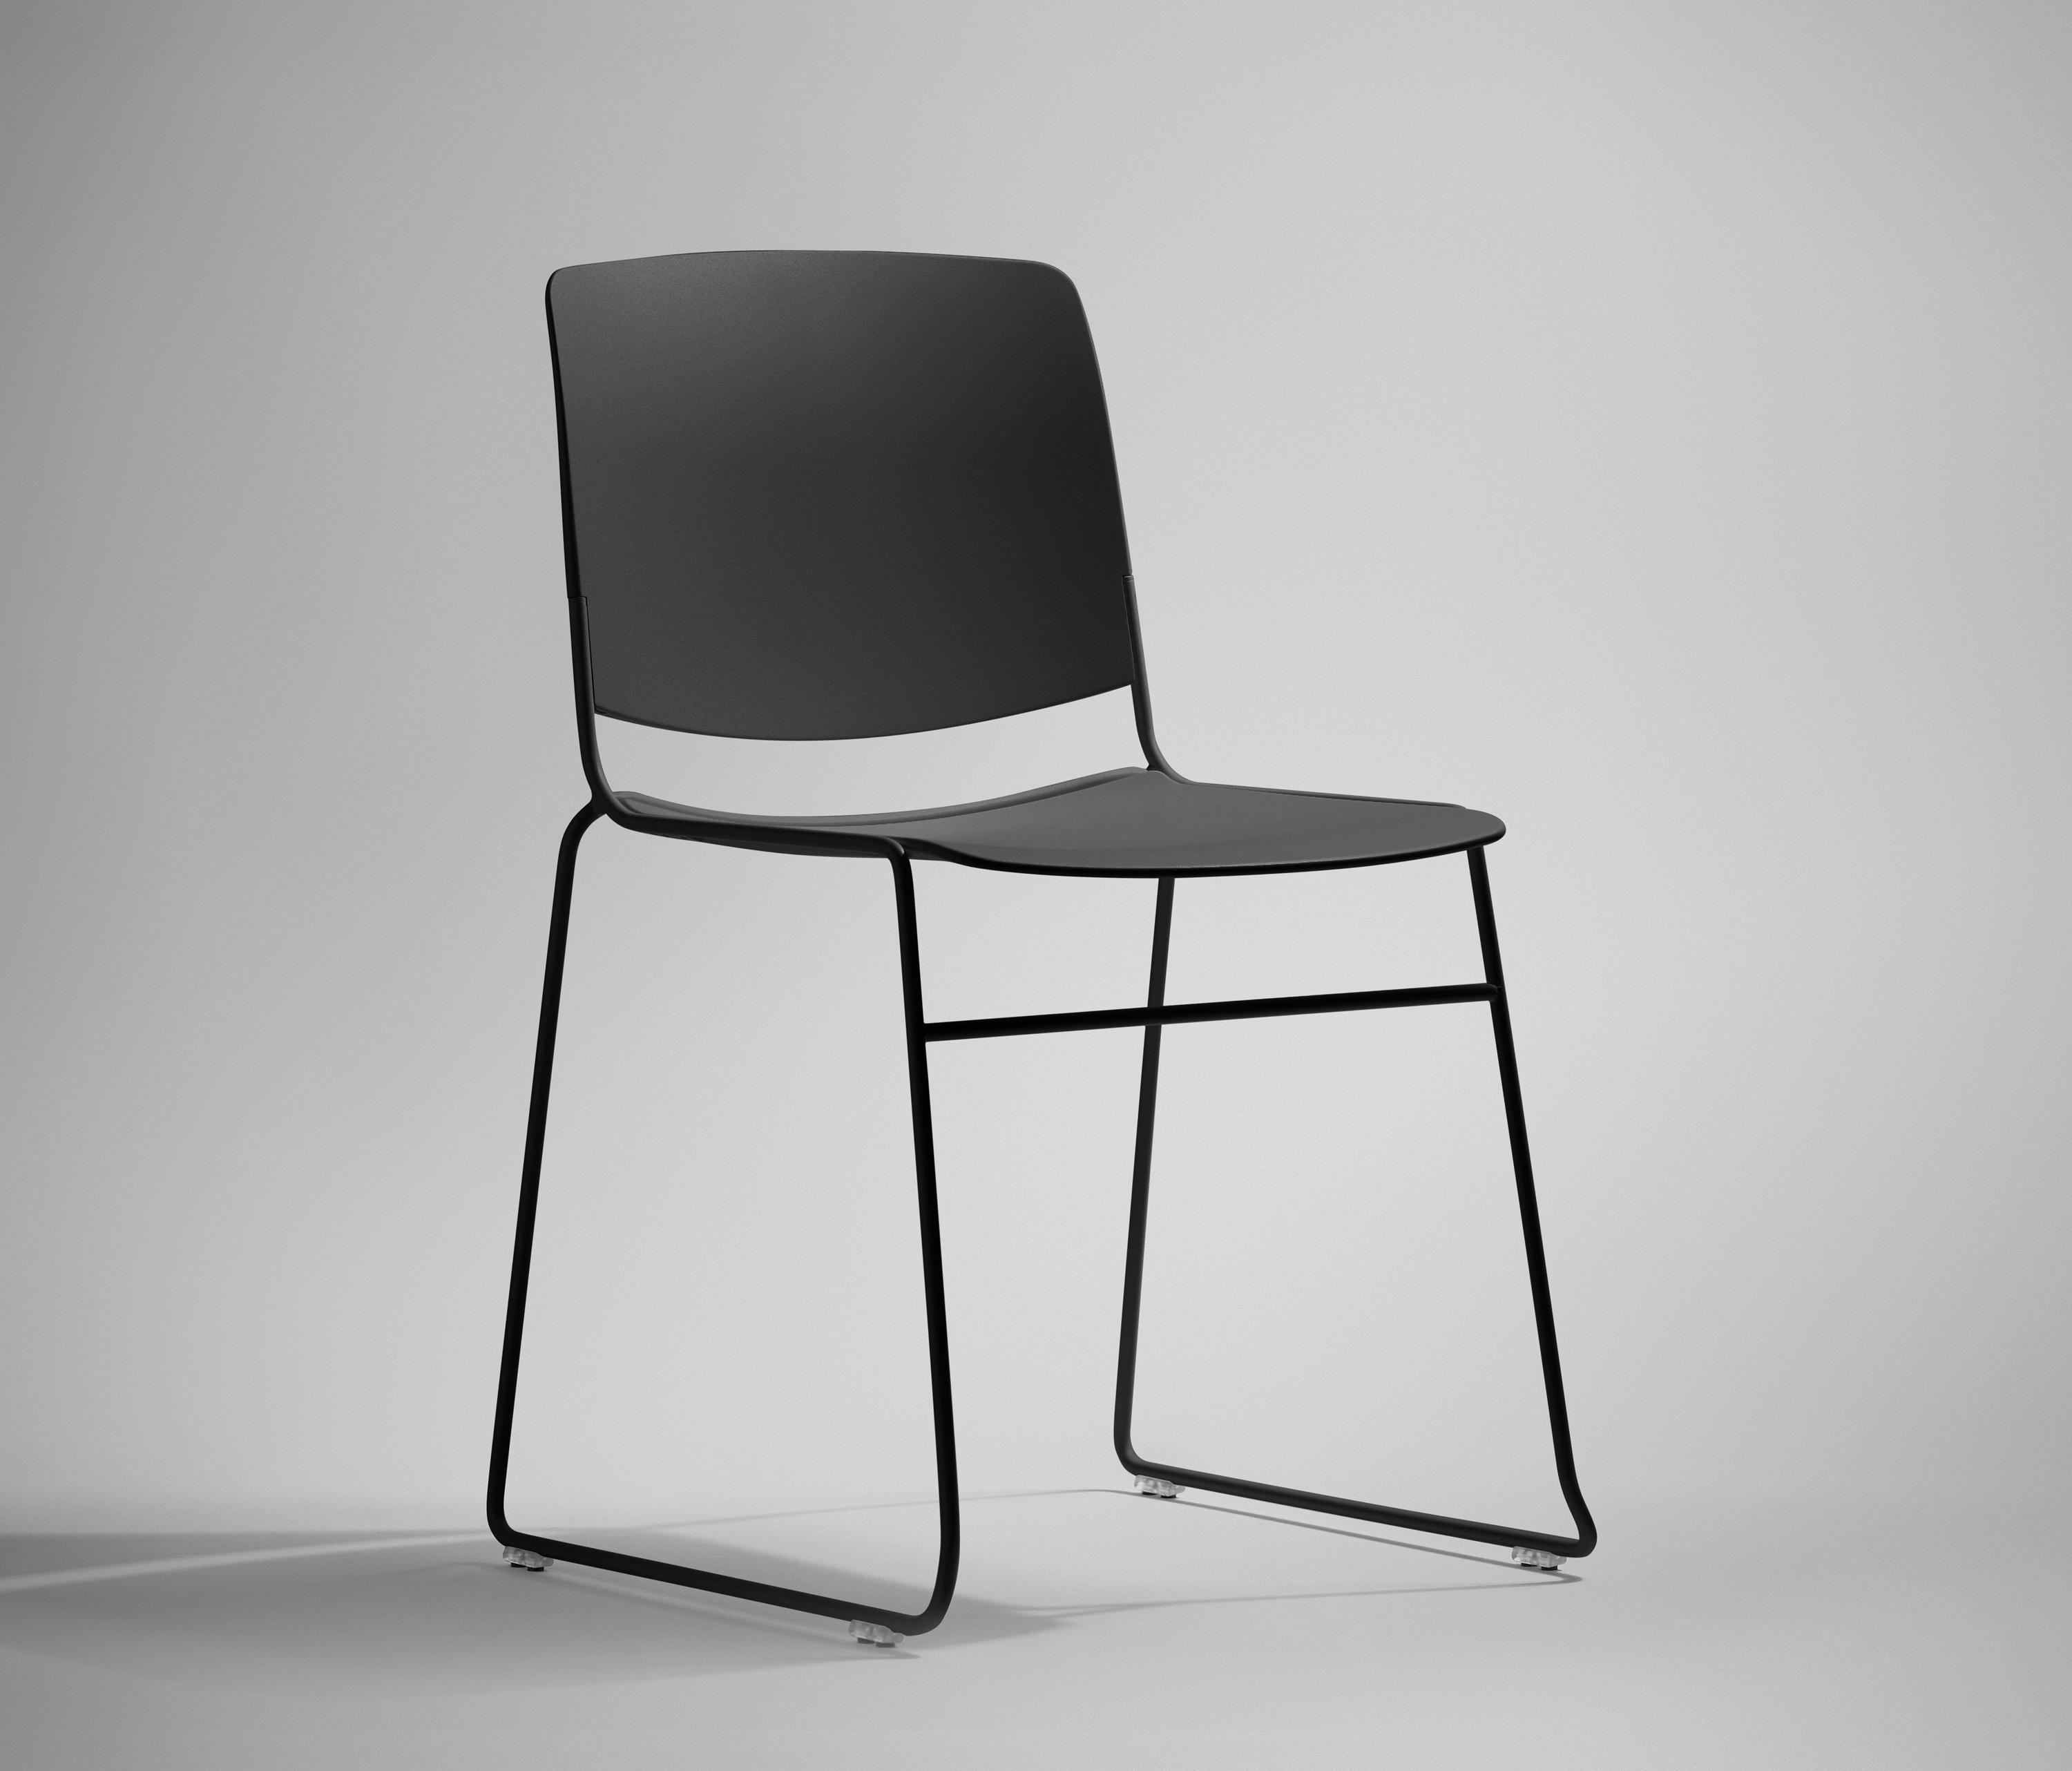 Basic chair design Cheap Mass Basic Chair By Sellex Chairs Architonic Mass Basic Chair Chairs From Sellex Architonic